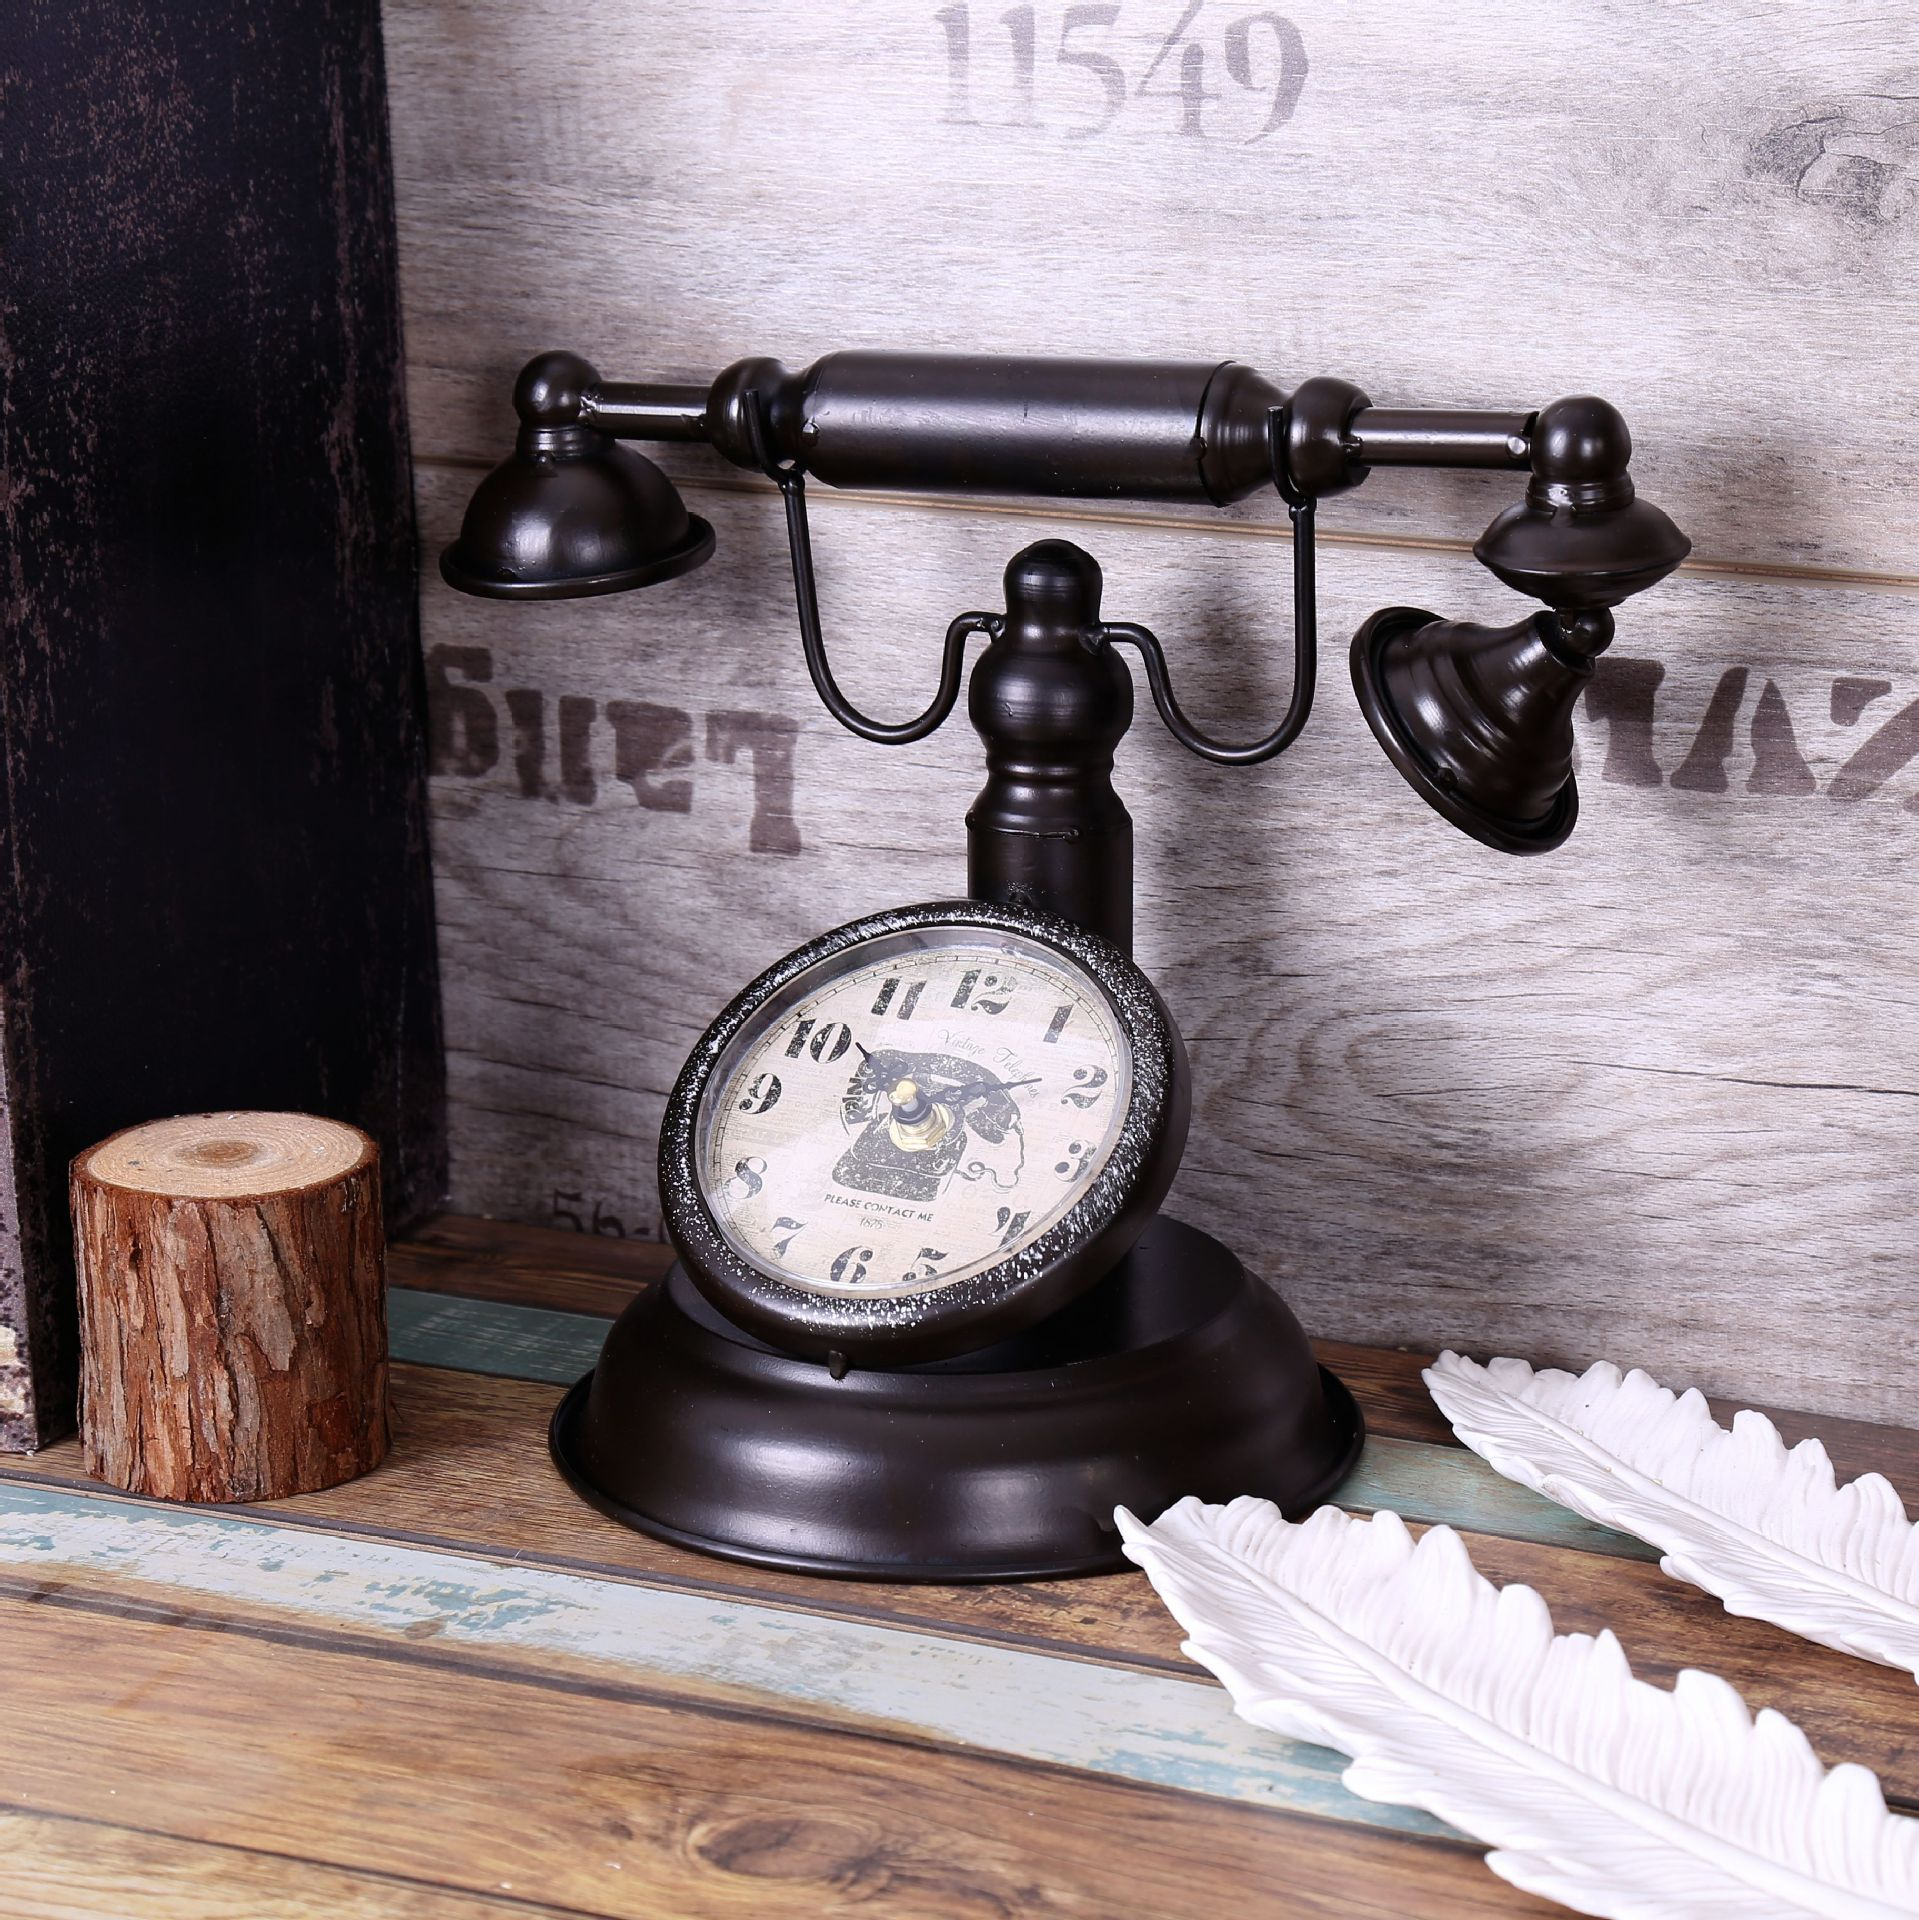 Table english pub table antique periodic table product on alibaba com - Shabby Chic Retro Telephone Model Vintage Decor Retro Desk Clock Table Clock Bar Cafe Crafts Decoration